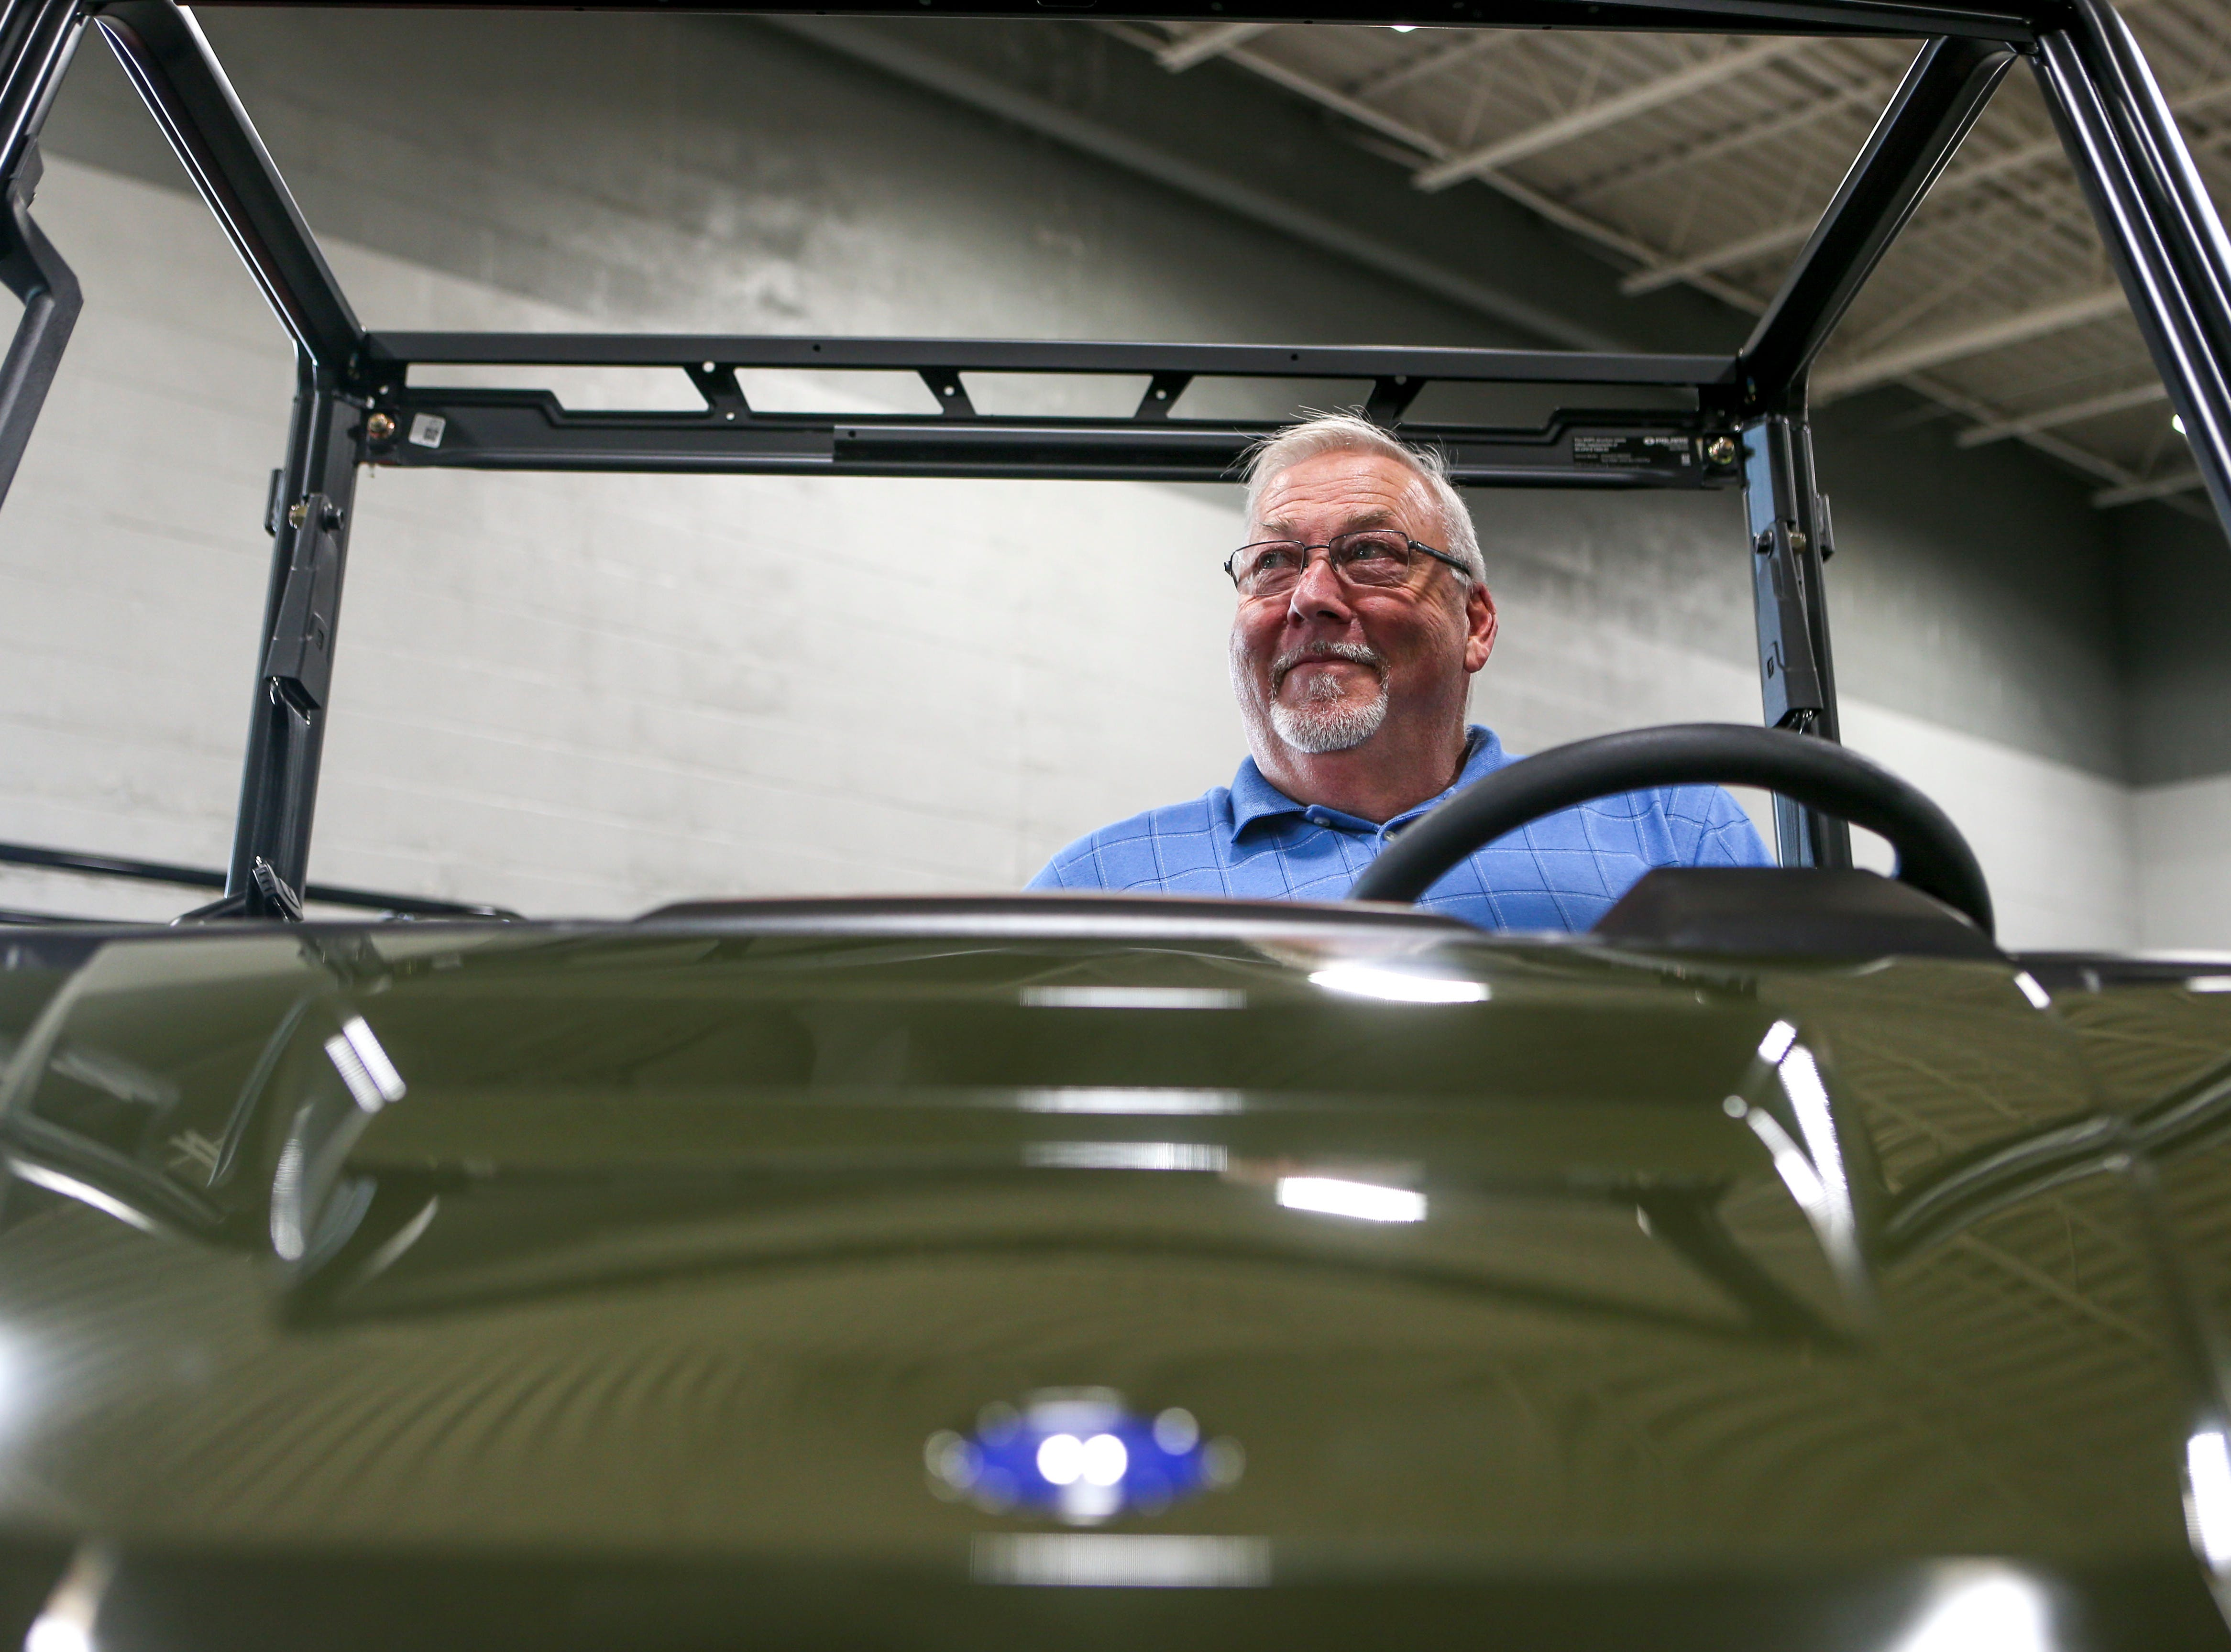 John Coleman, the winner of a Polaris Ranger ATV, sits in the drivers seat of a model vehicle at Bob's House of Honda in Jackson, Tenn., on Thursday, Sept. 20, 2018.